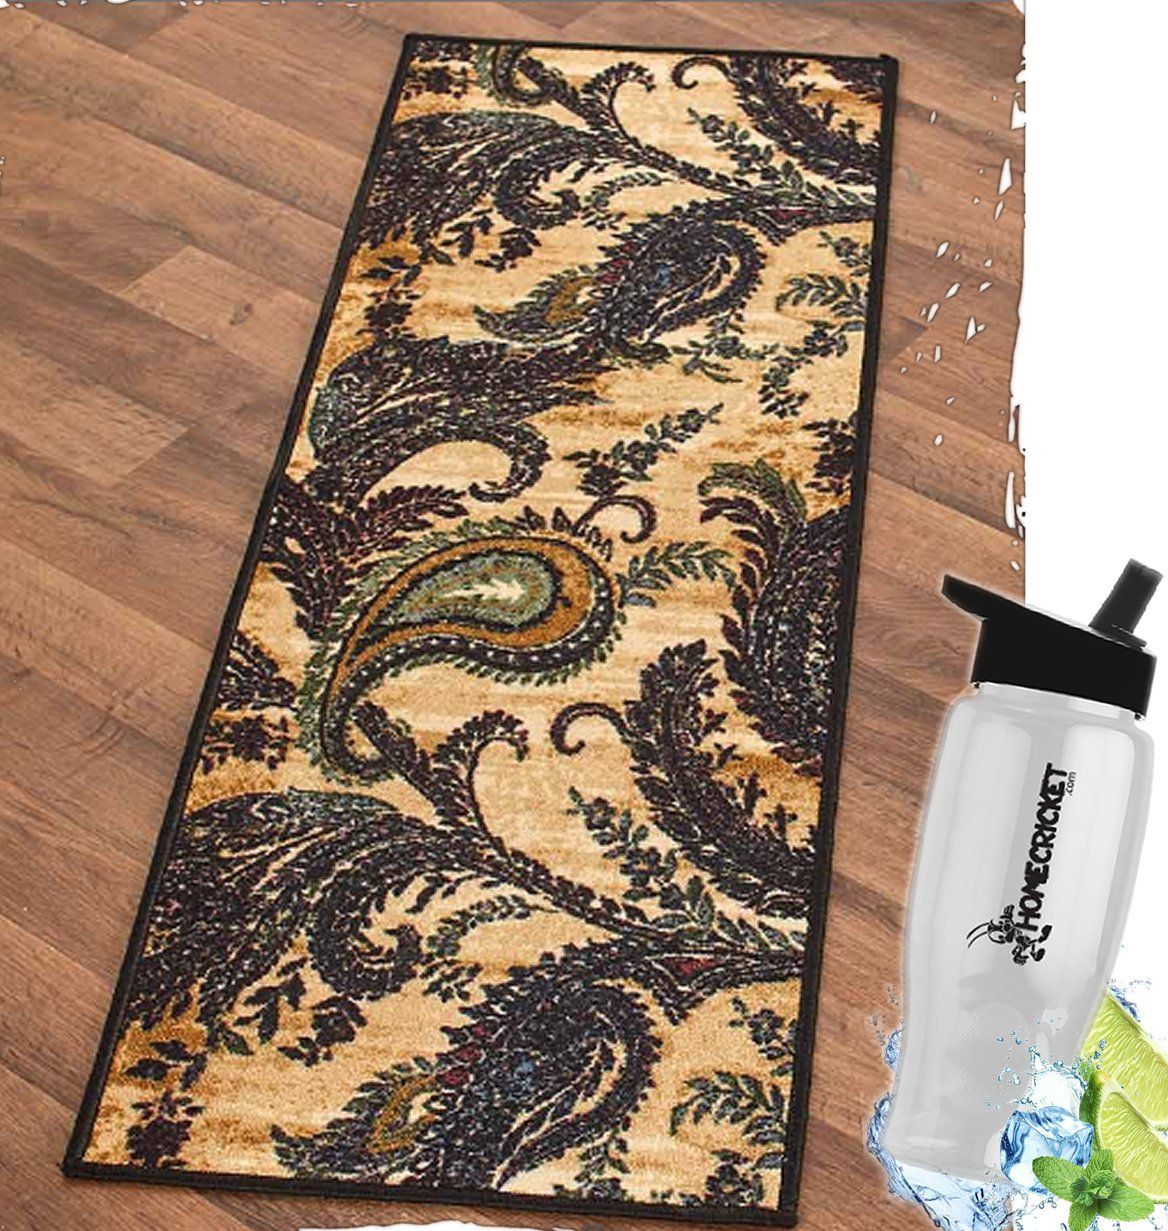 Gift Included- Decorative High-Traffic Floor Rugs and Runners Paisley Decor Nylon W/Latex Backing + Free Bonus Water Bottle by Homecricket (Runner, 20'' x 59'')